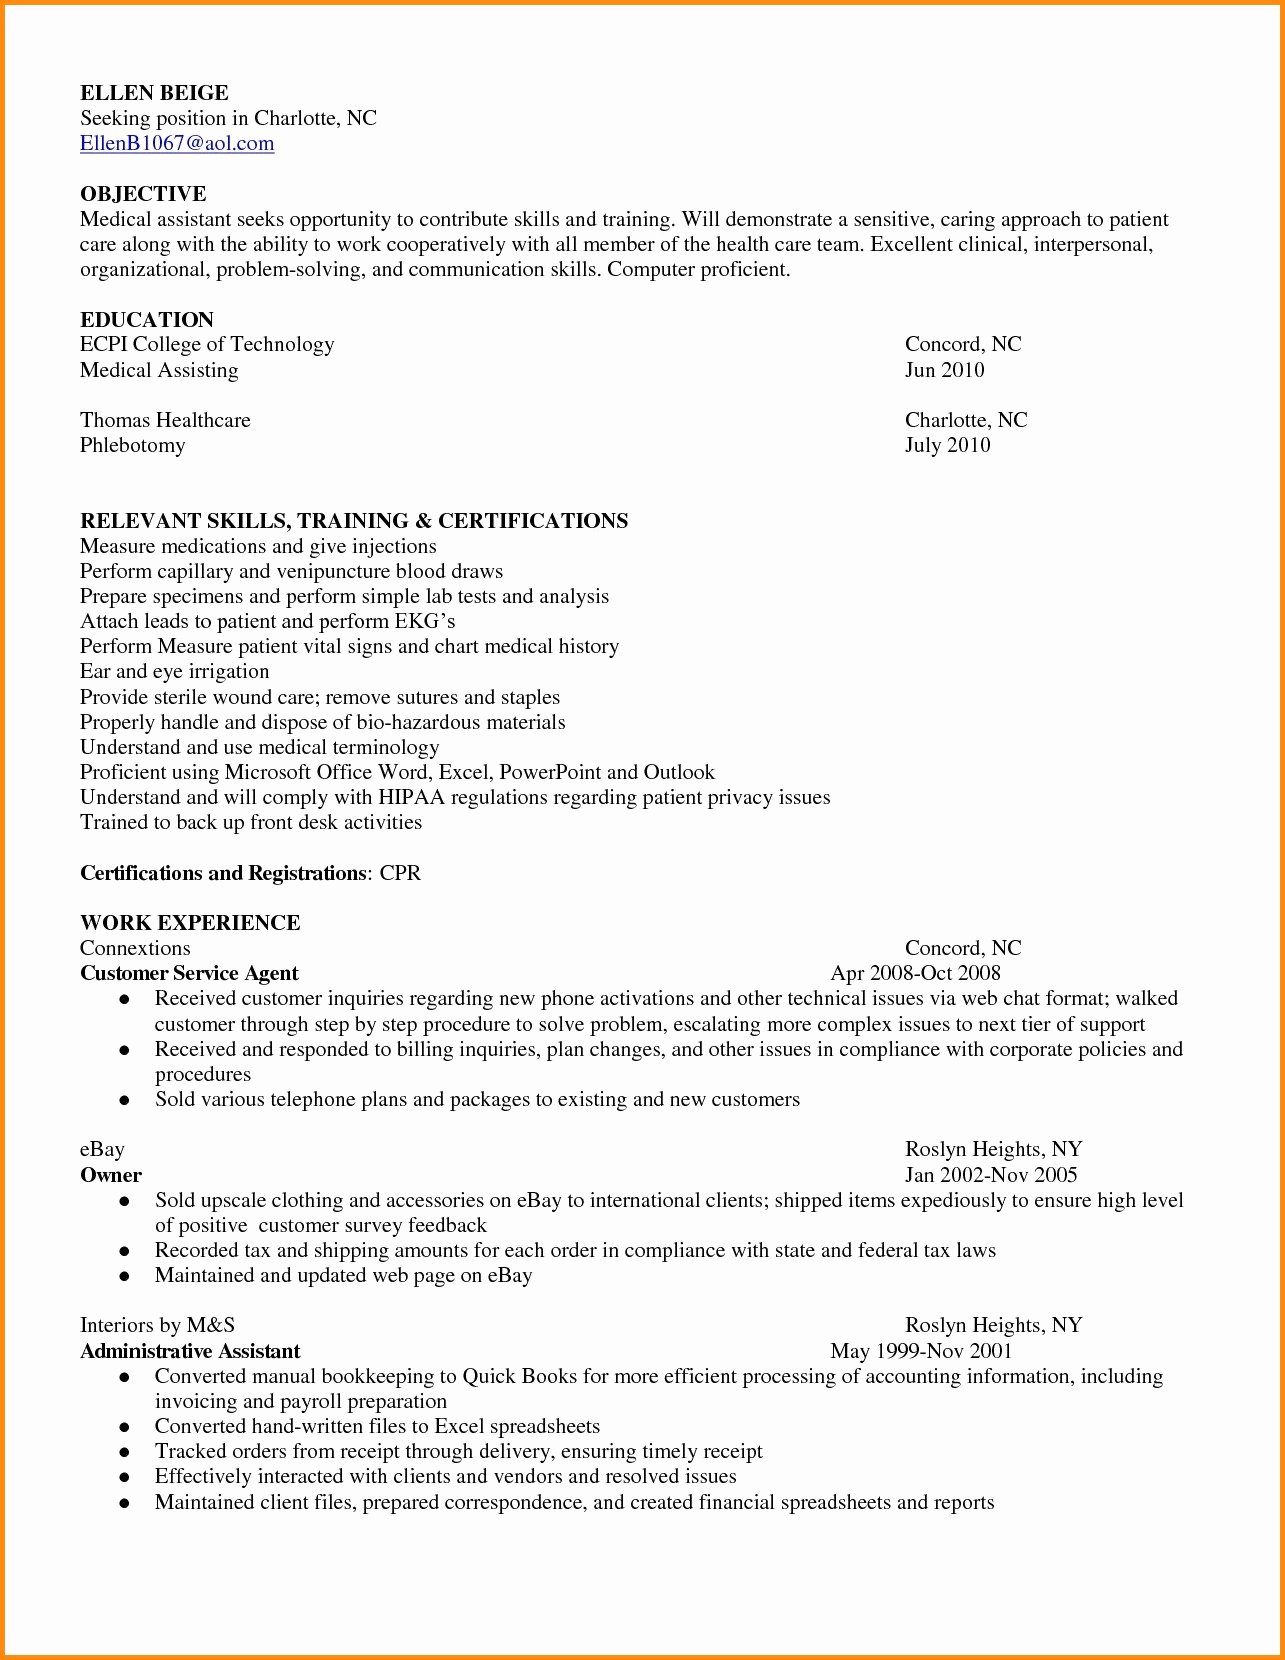 Medical assistant Externship Resume New Resume for Medical assistant Objective Externship Skills